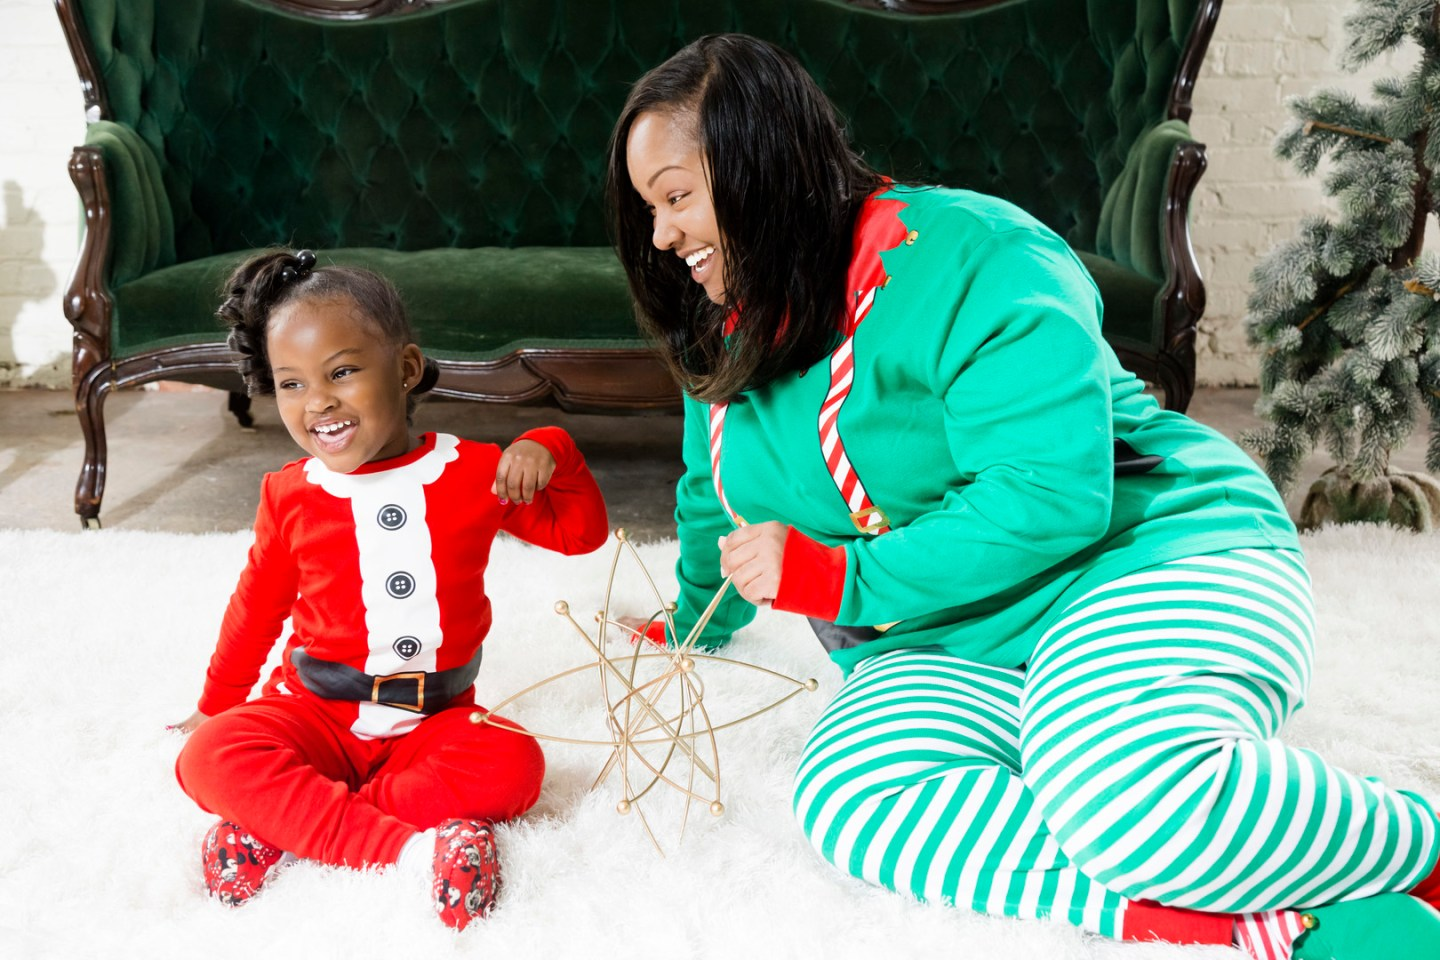 c3pybjwhdv4qgiodvk78_big Mommy & Me Christmas PJ Session in Greensboro, NC